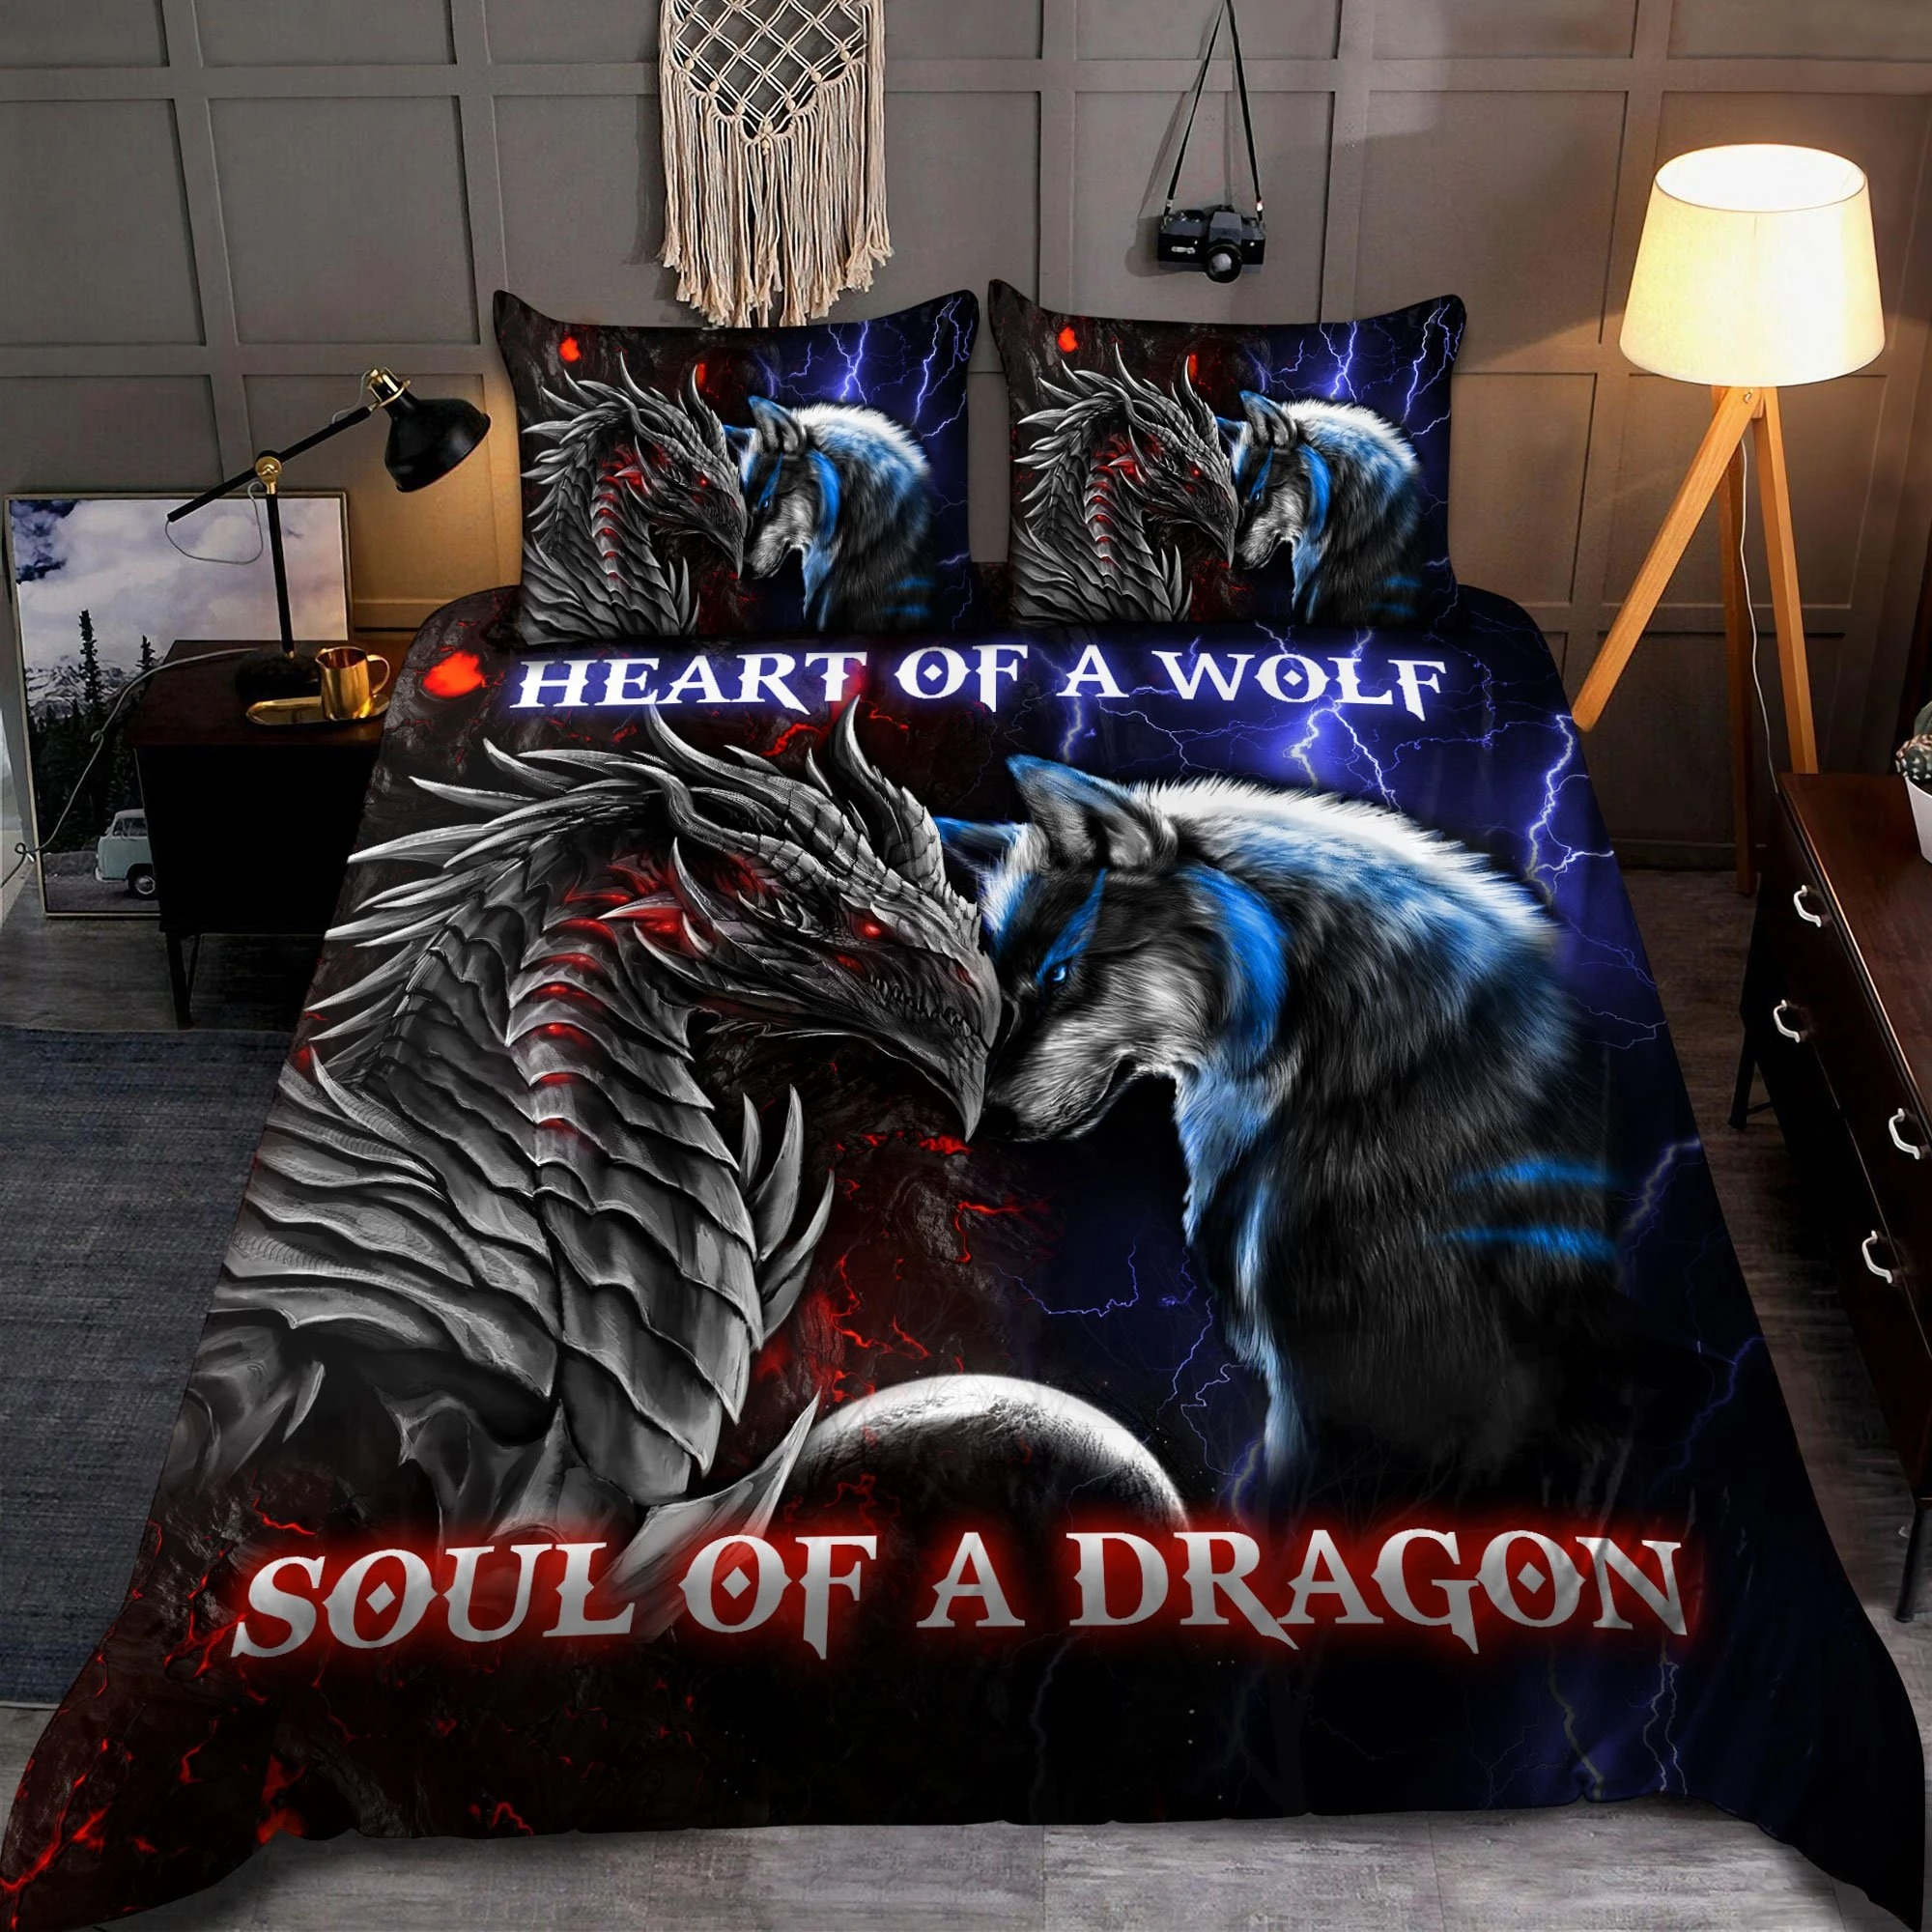 Heart of a wolf soul of a dragon bedding set2